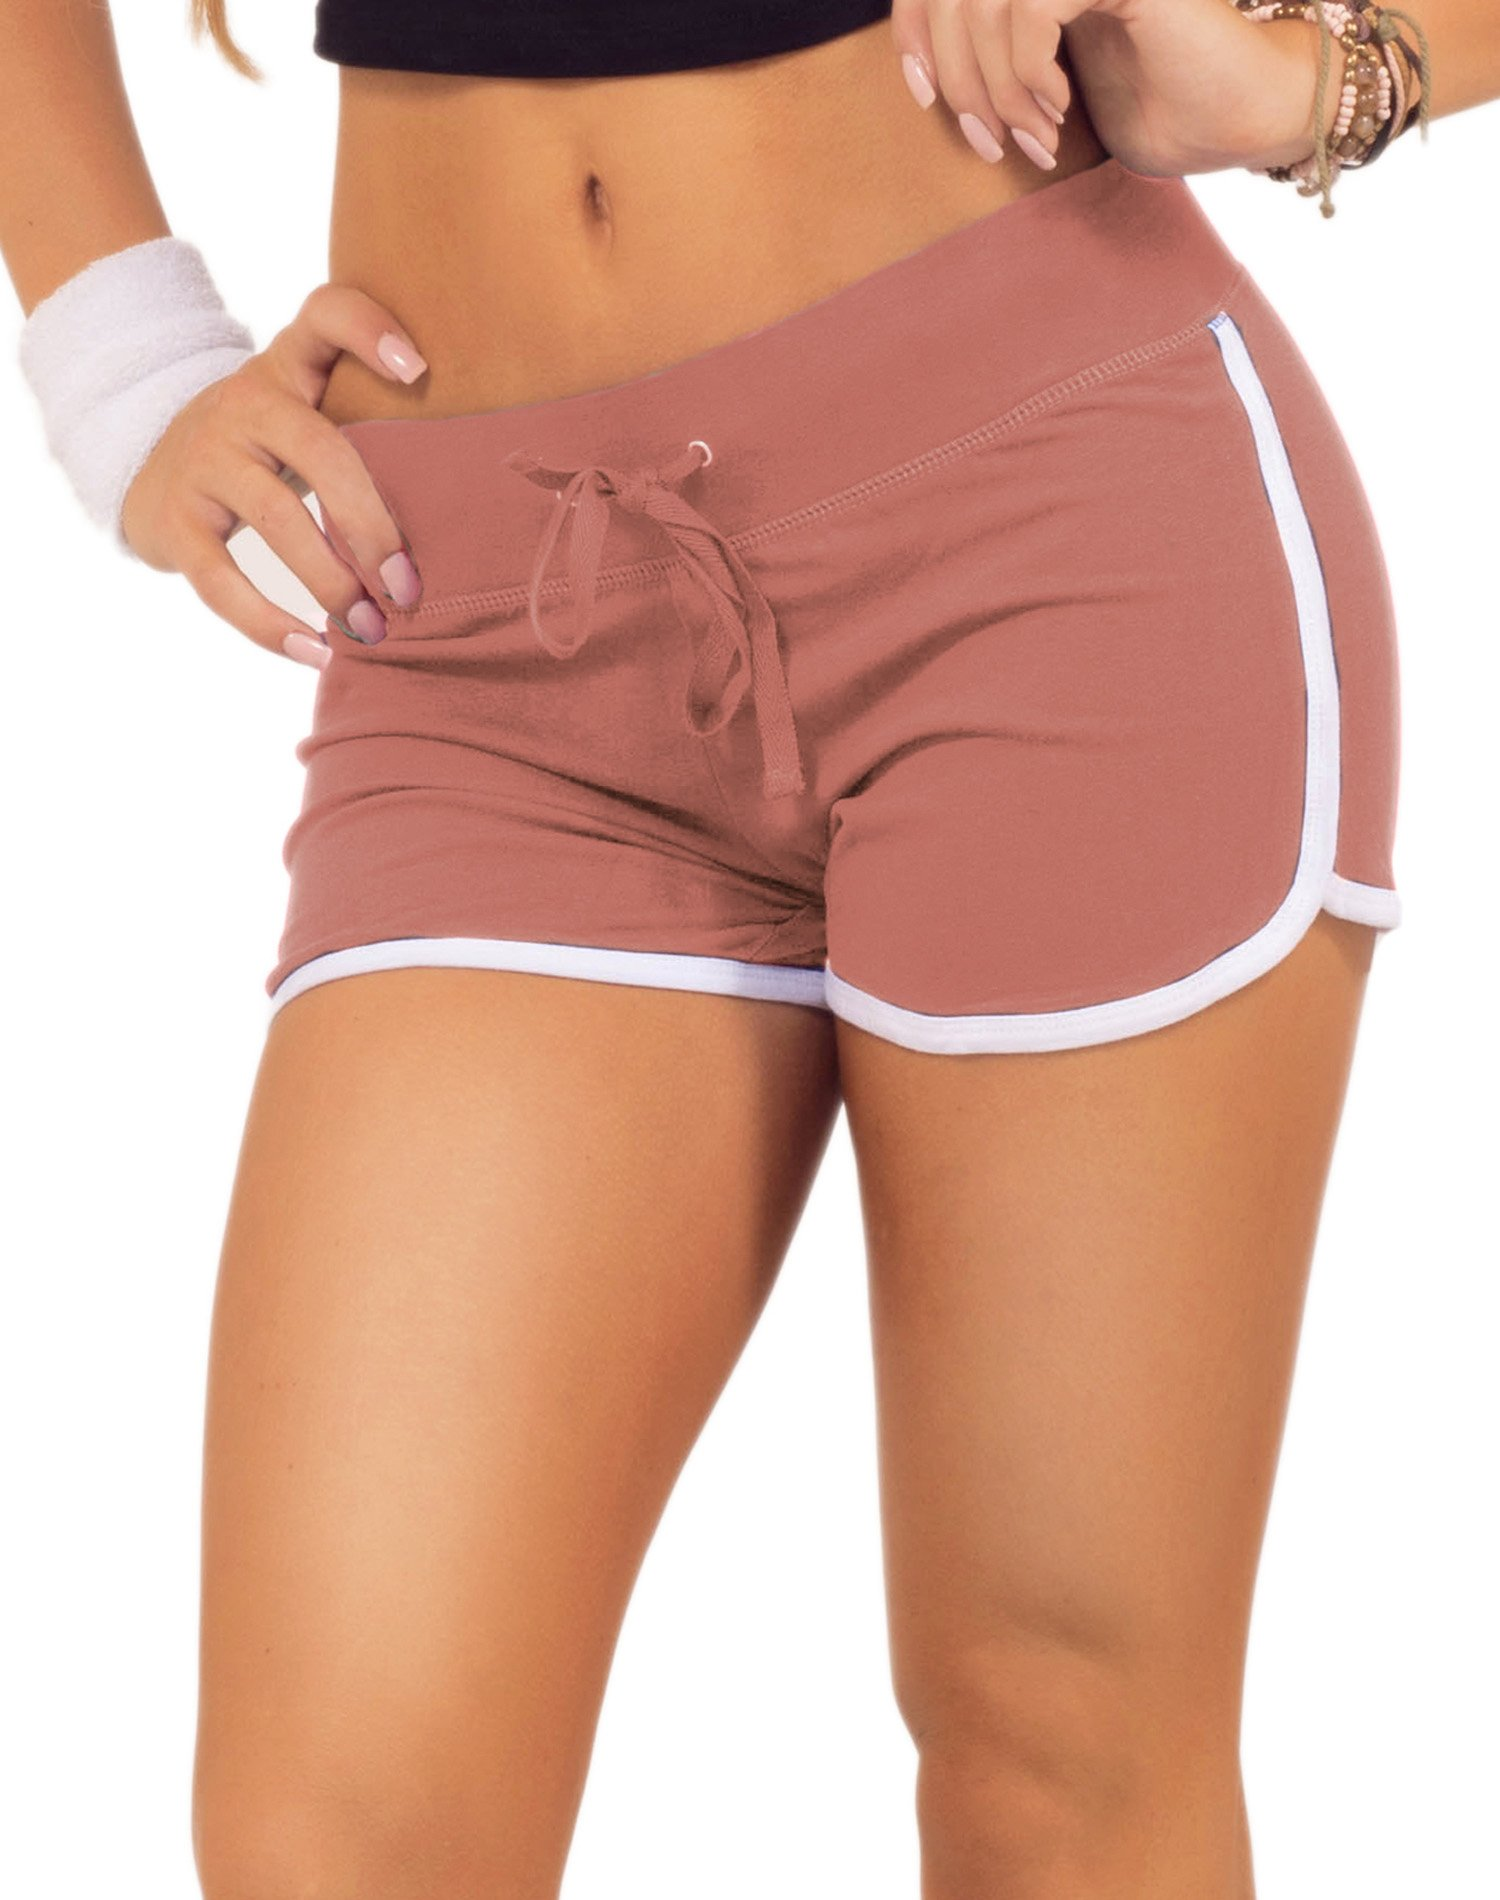 HOT FROM HOLLYWOOD Women's Elastic Waist White Outline Active Lounge Shorts